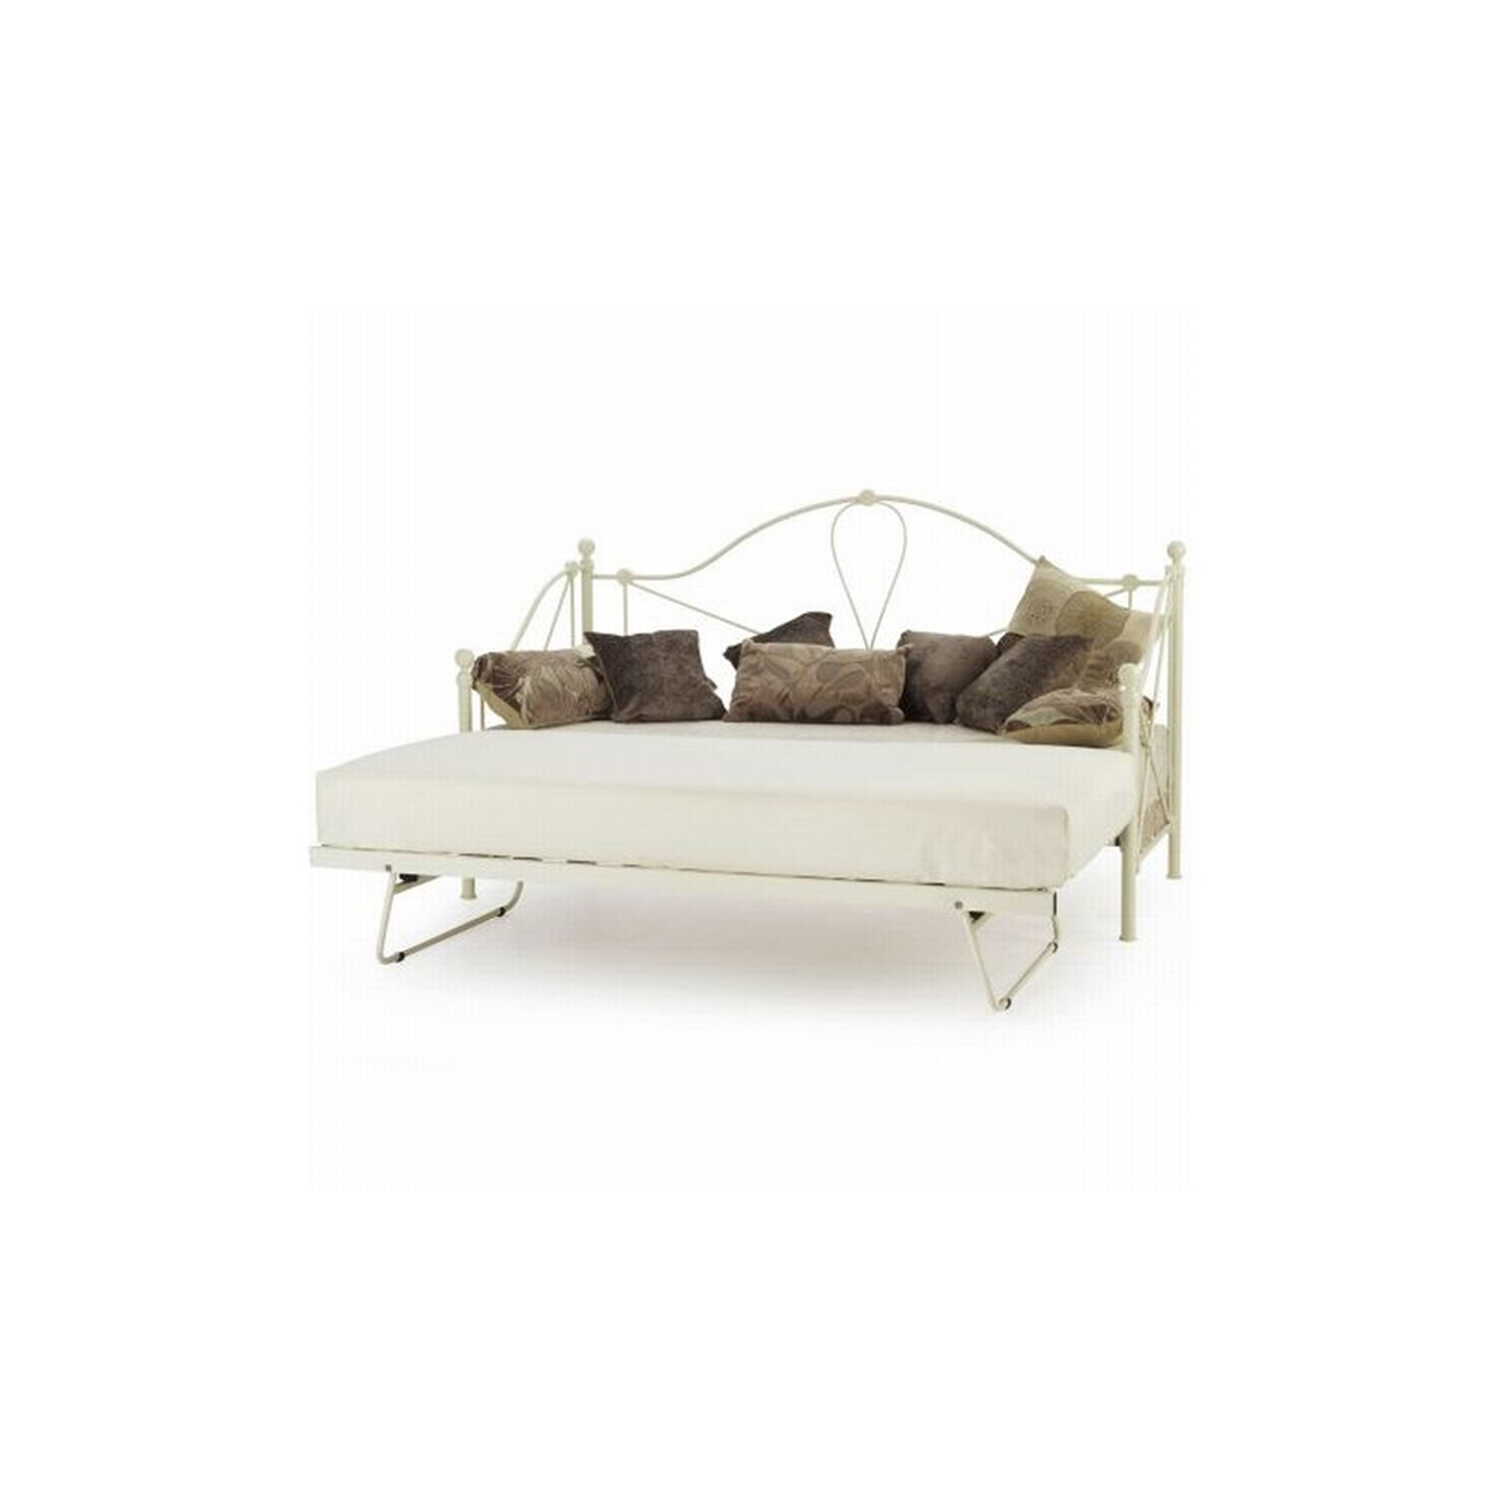 Image of Casa Lyon Single Day Bed with Guest Bed